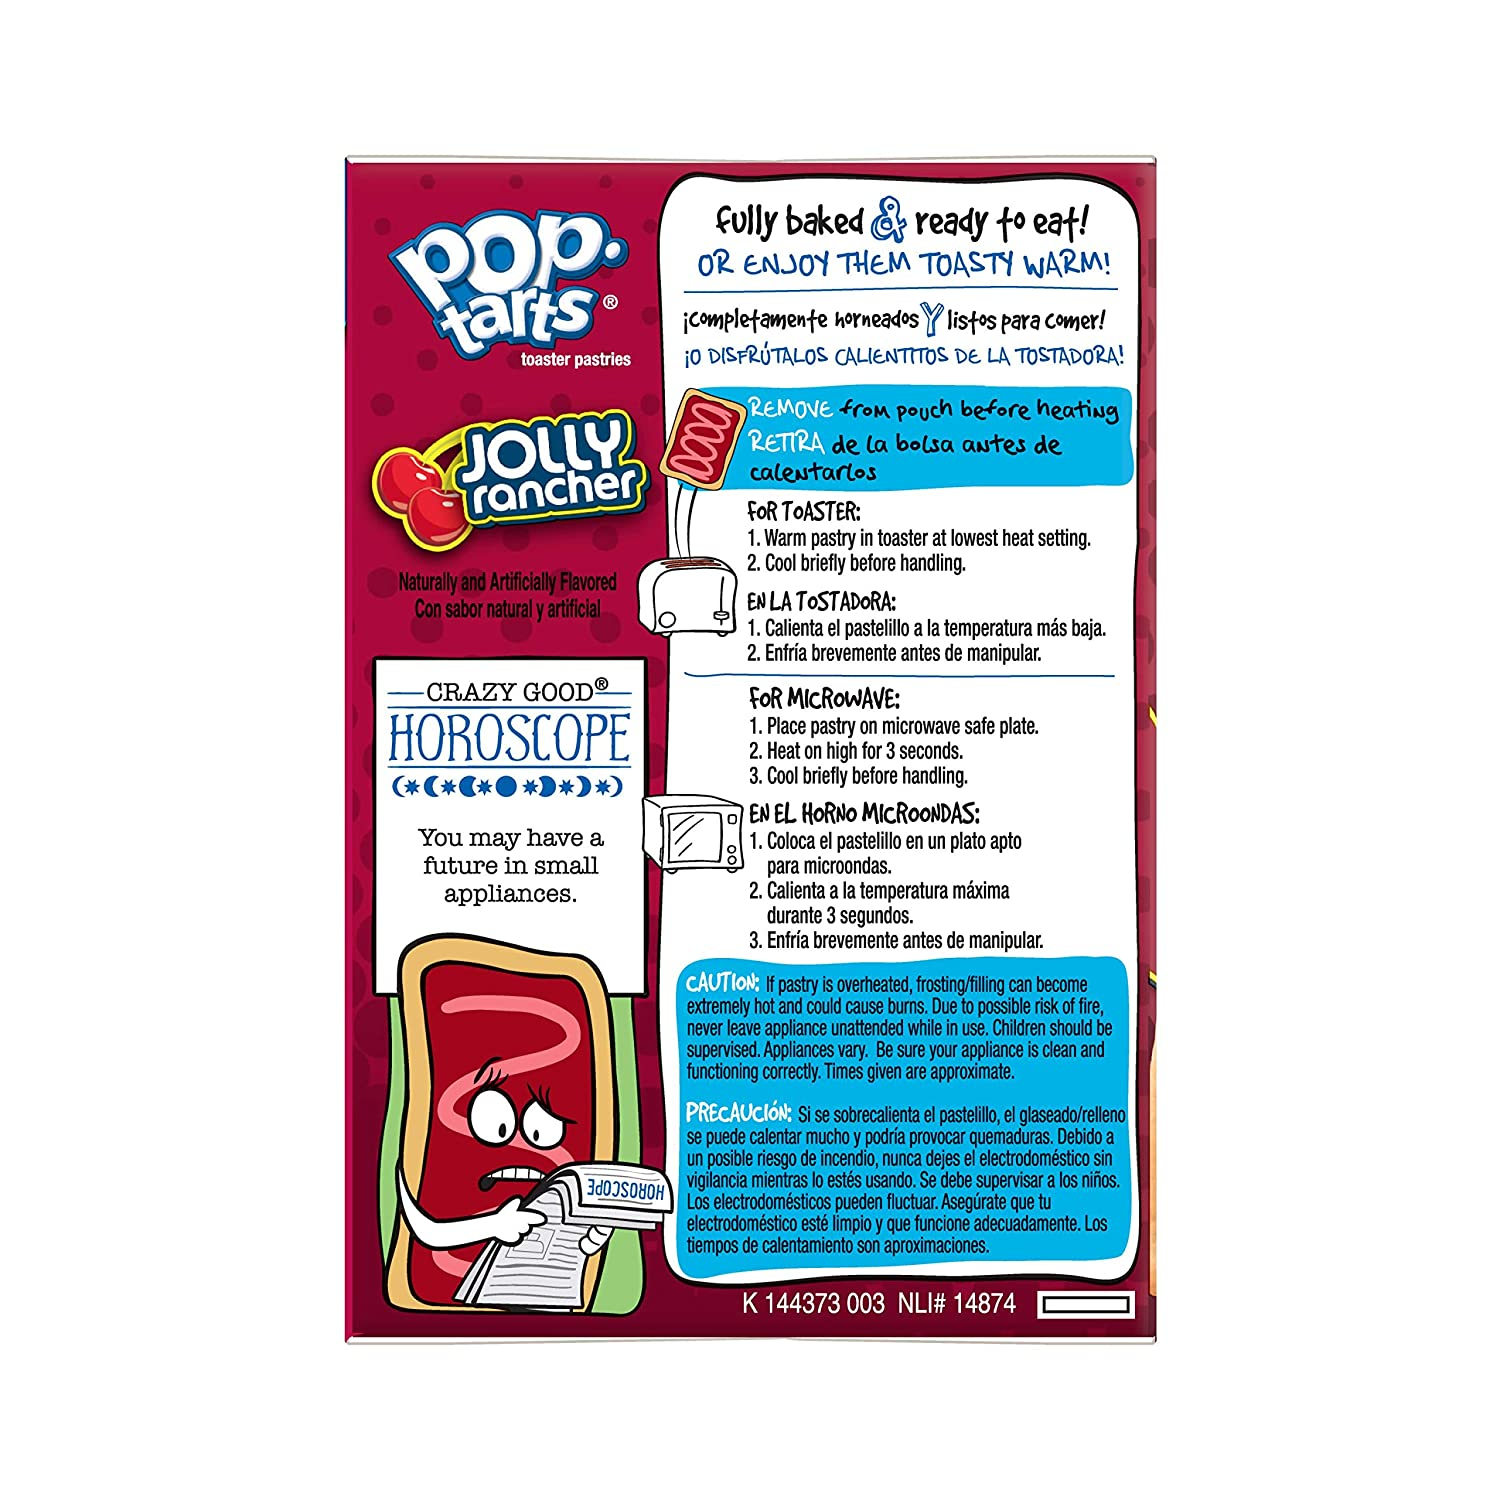 Amazon.com: Pop-Tarts Breakfast Toaster Pastries, Frosted JOLLY RANCHER Cherry Flavored, 14.1 oz (8 Count): Prime Pantry